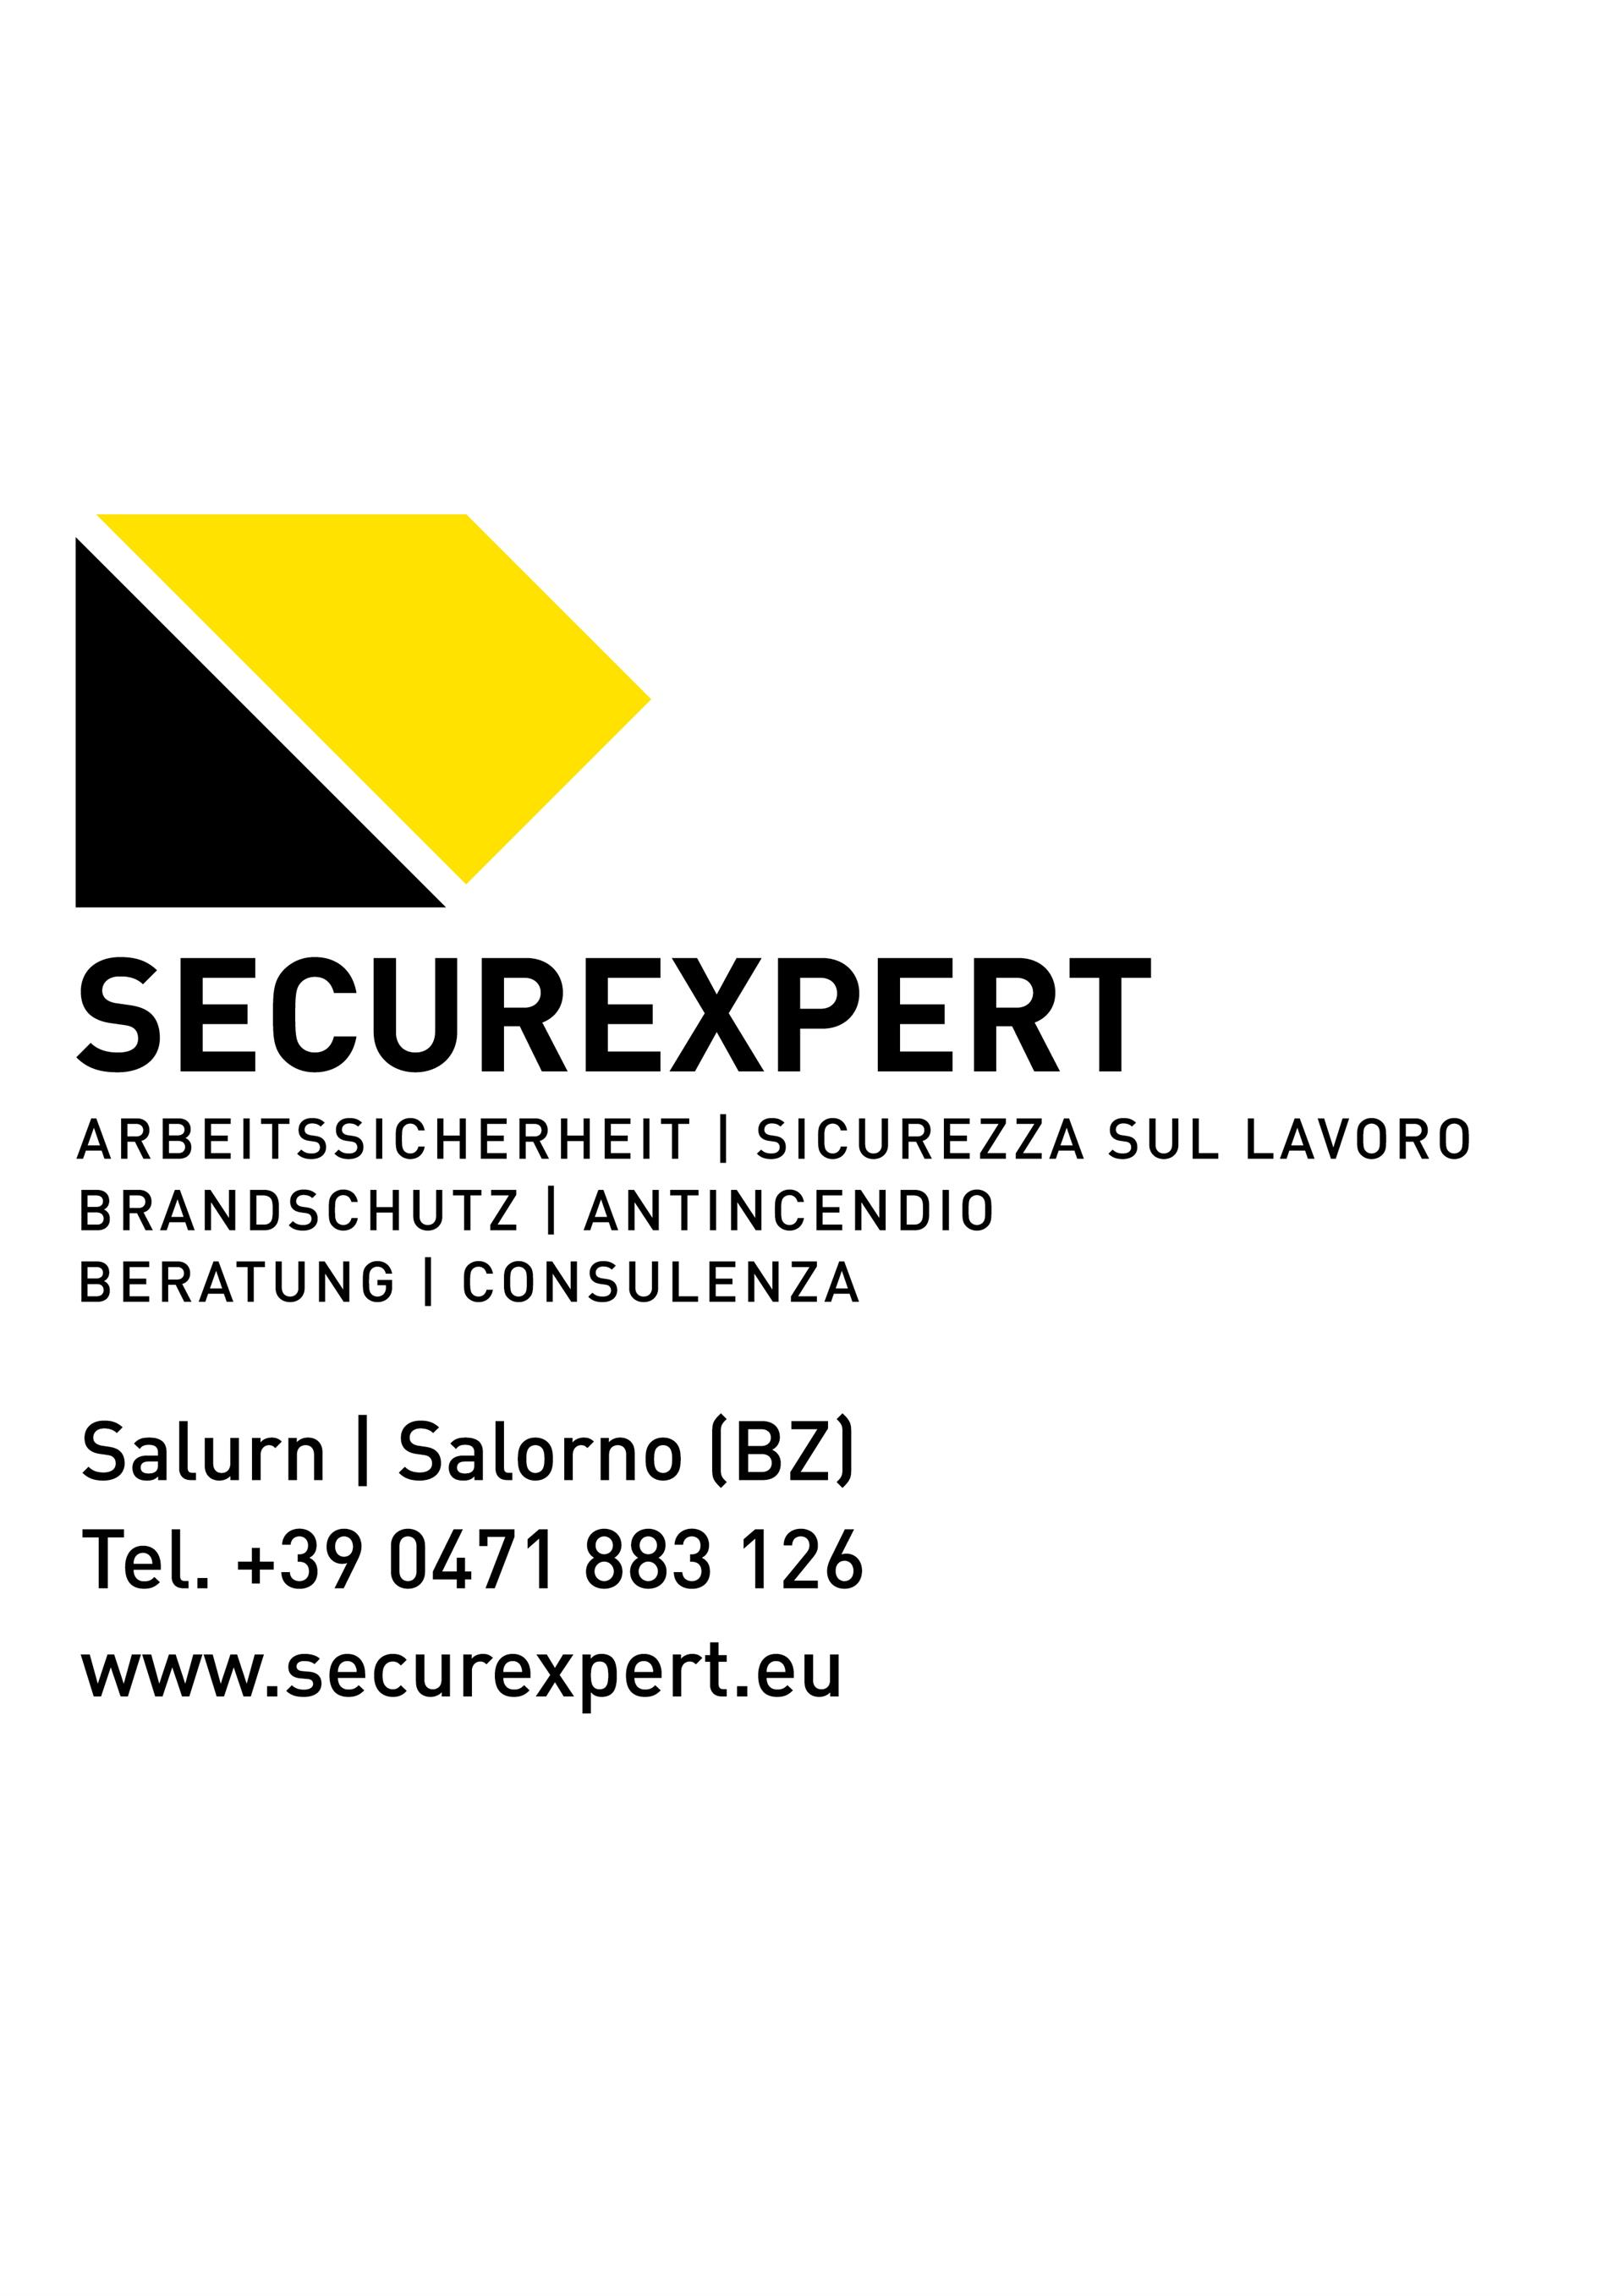 Securexpert